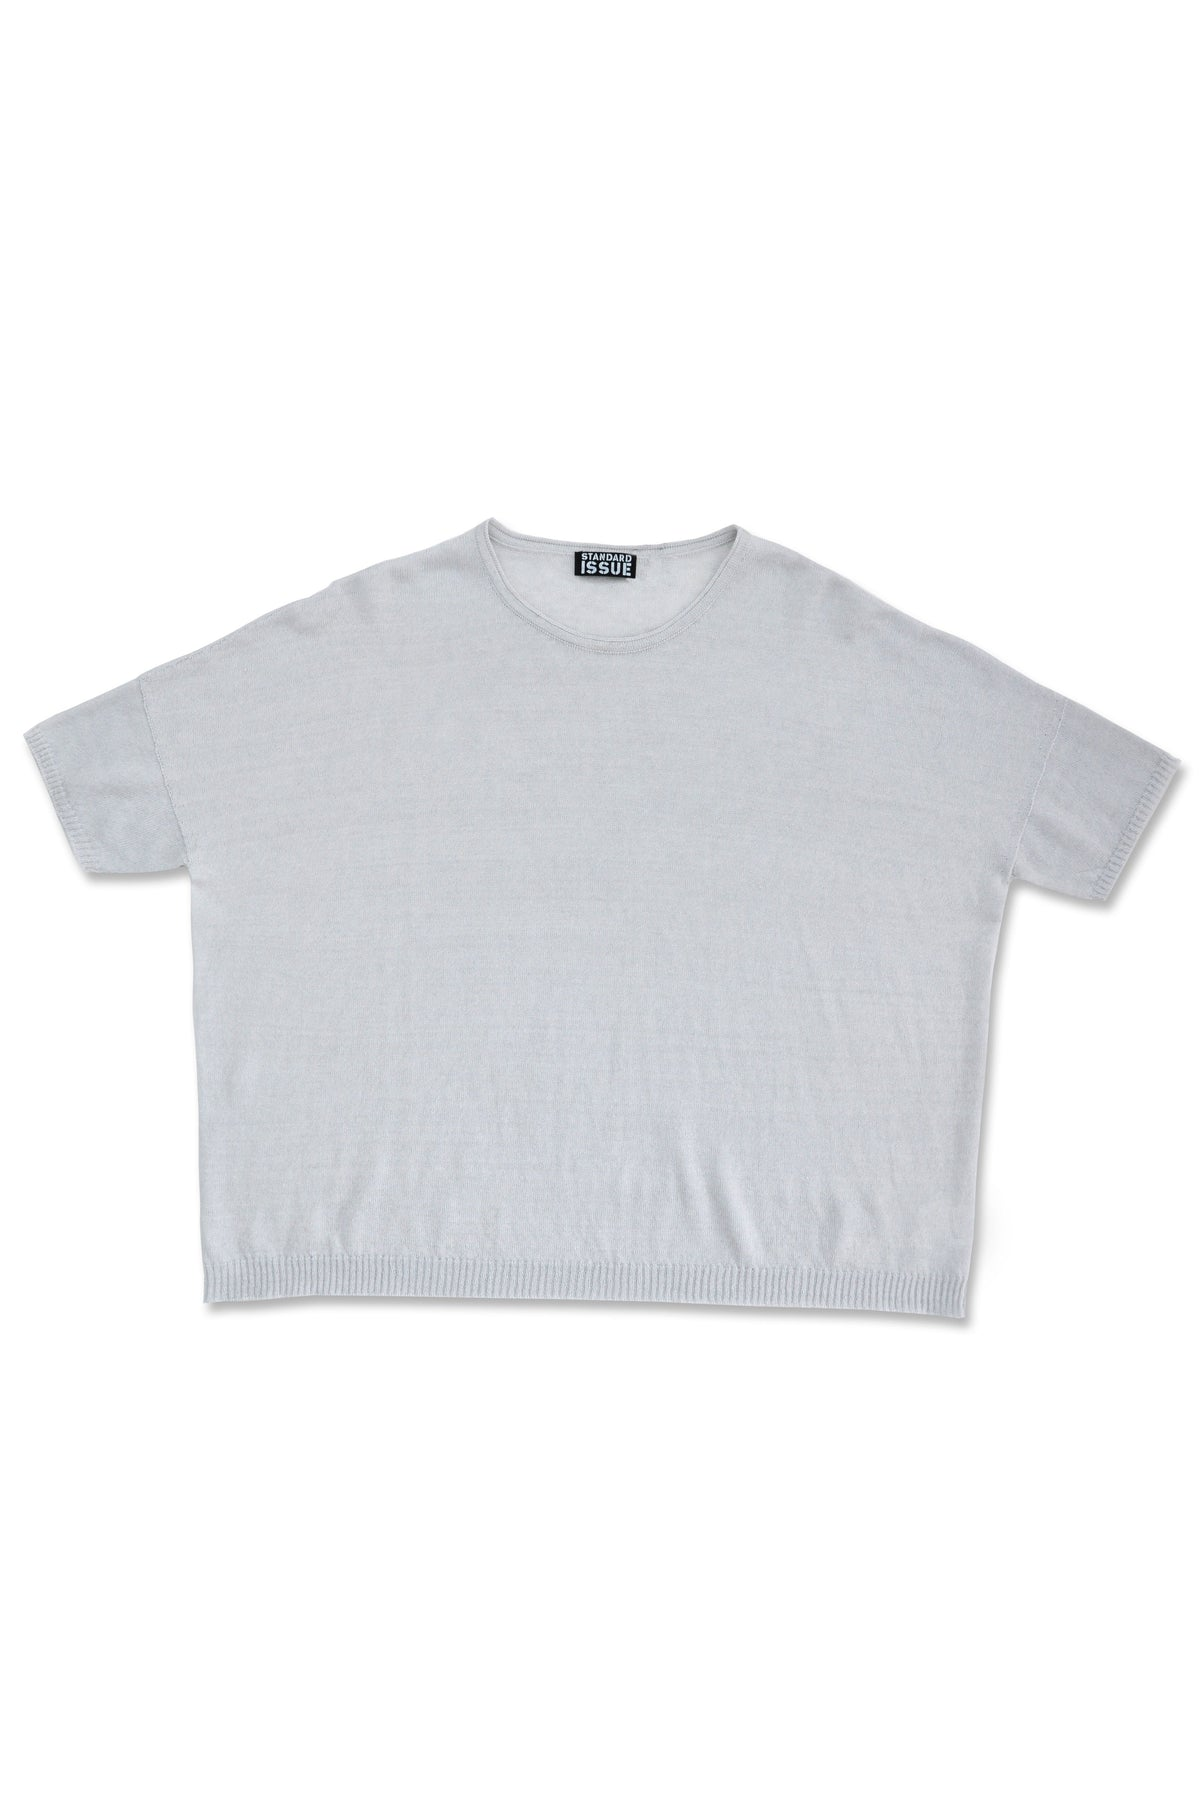 Standard Issue Linen wide tee Knitwear Stockists Auckland Made in New Zealand NZ Designer Clothing